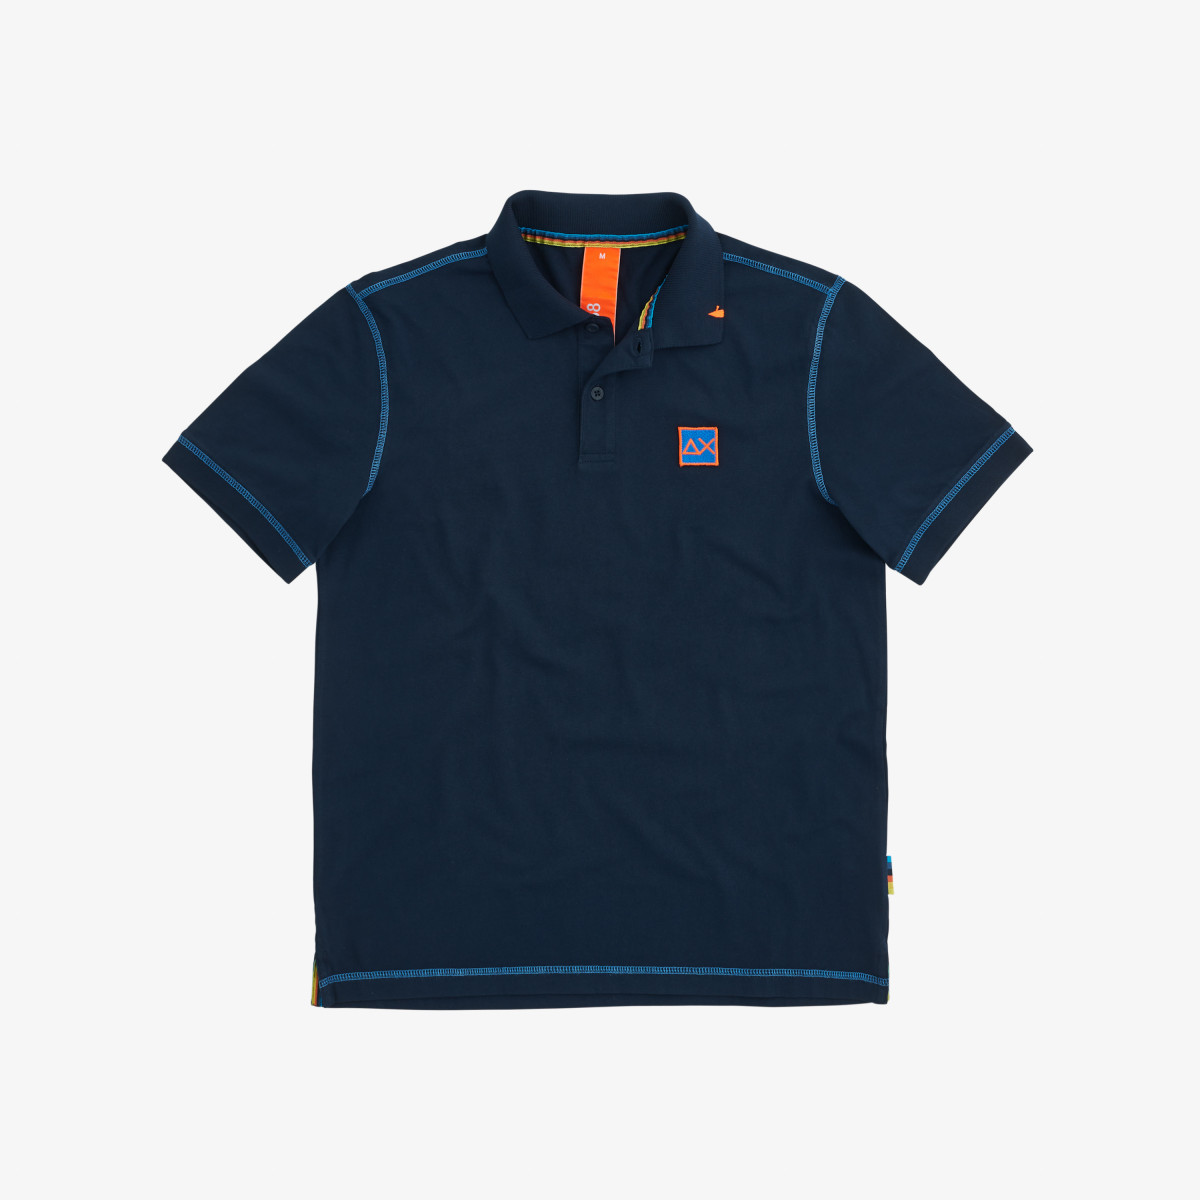 POLO COLD DYE CONTRAST STITCHING NAVY BLUE